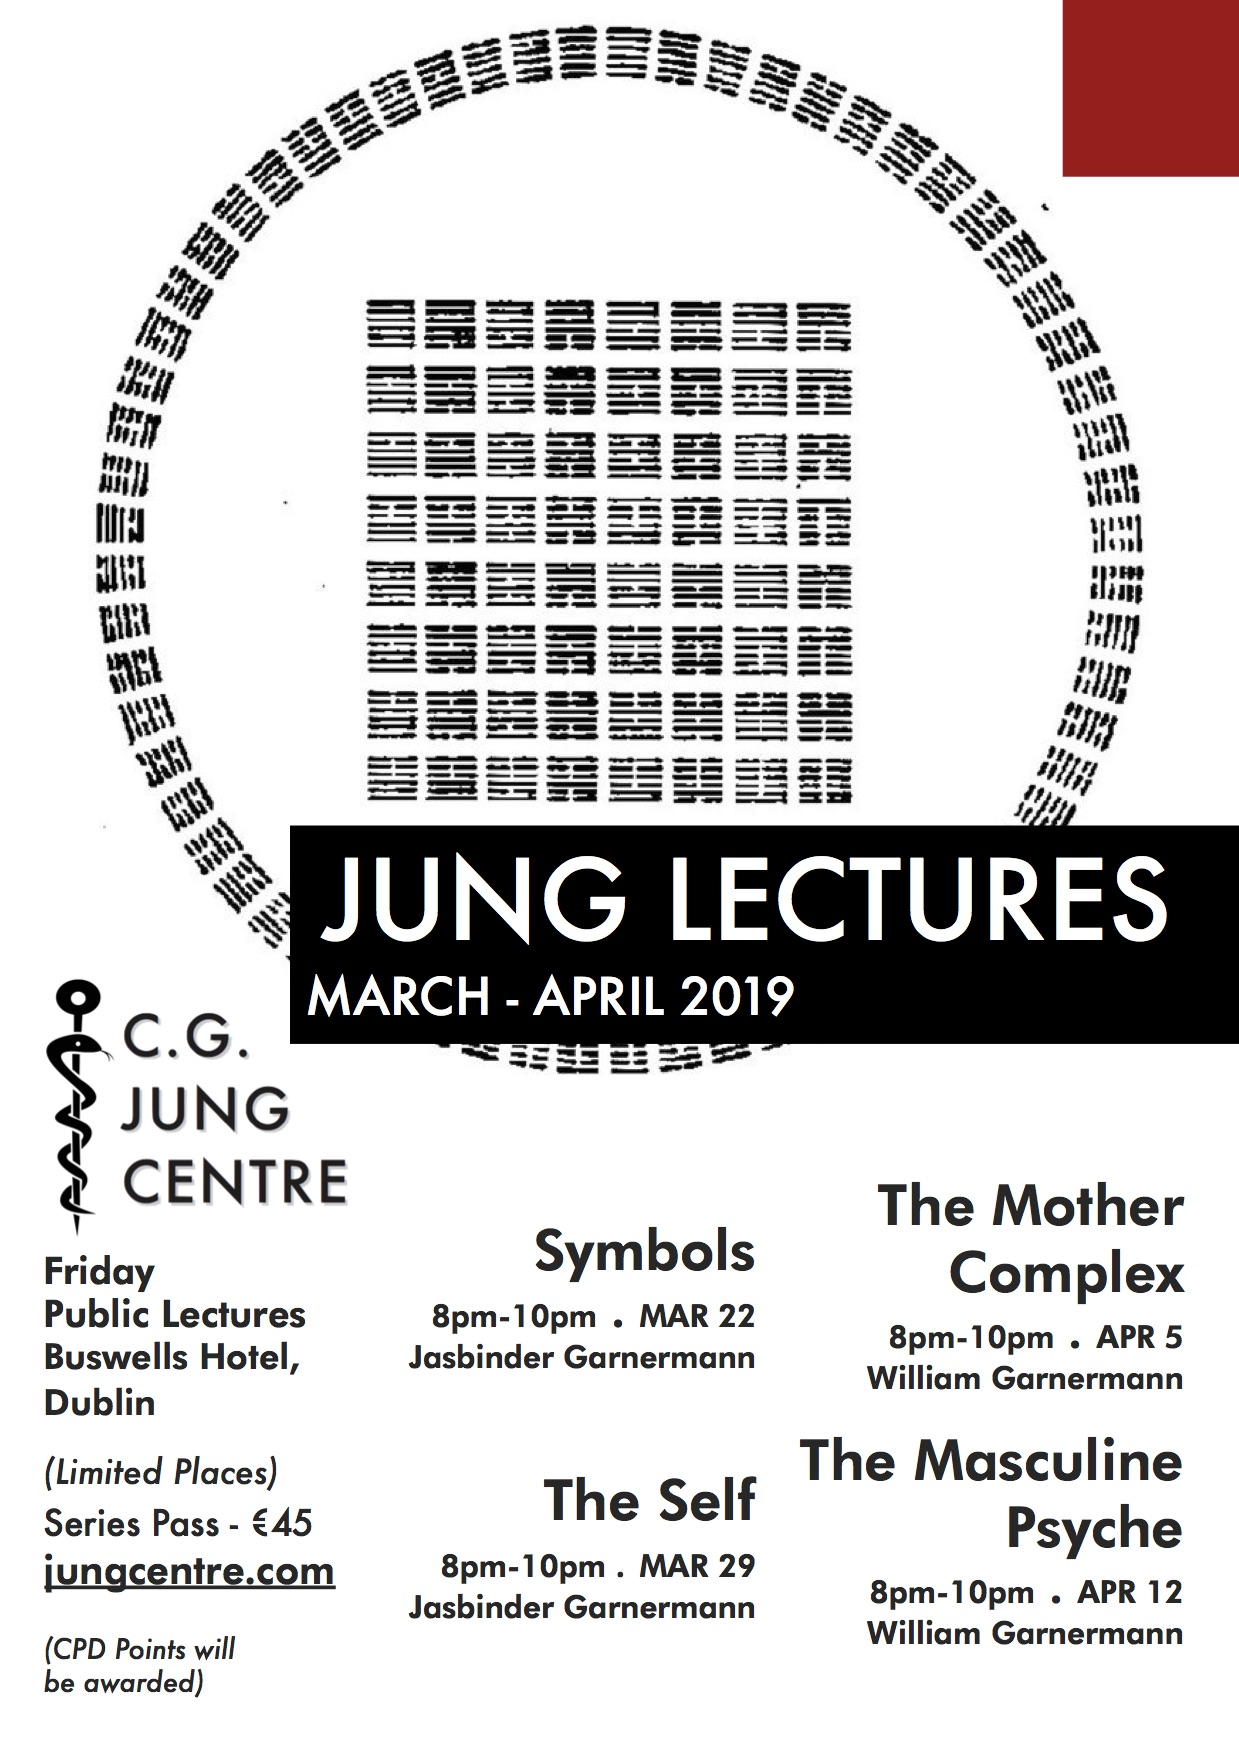 JUNG LECTURES March 2019.jpg